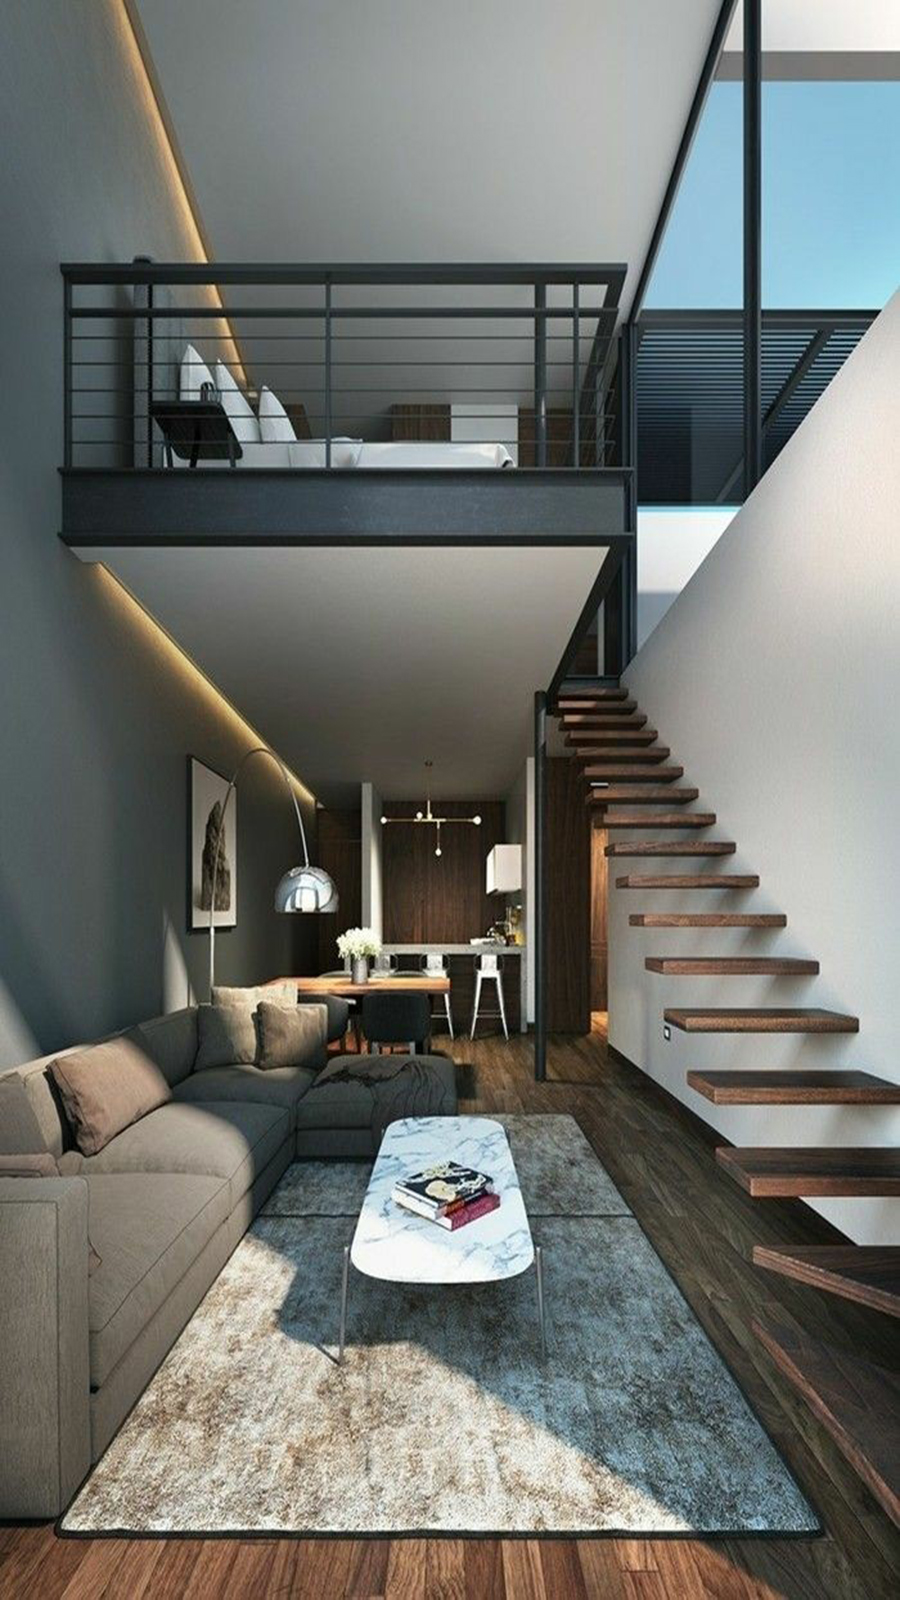 House Design Wallpapers Free Download – Best Wallpapers